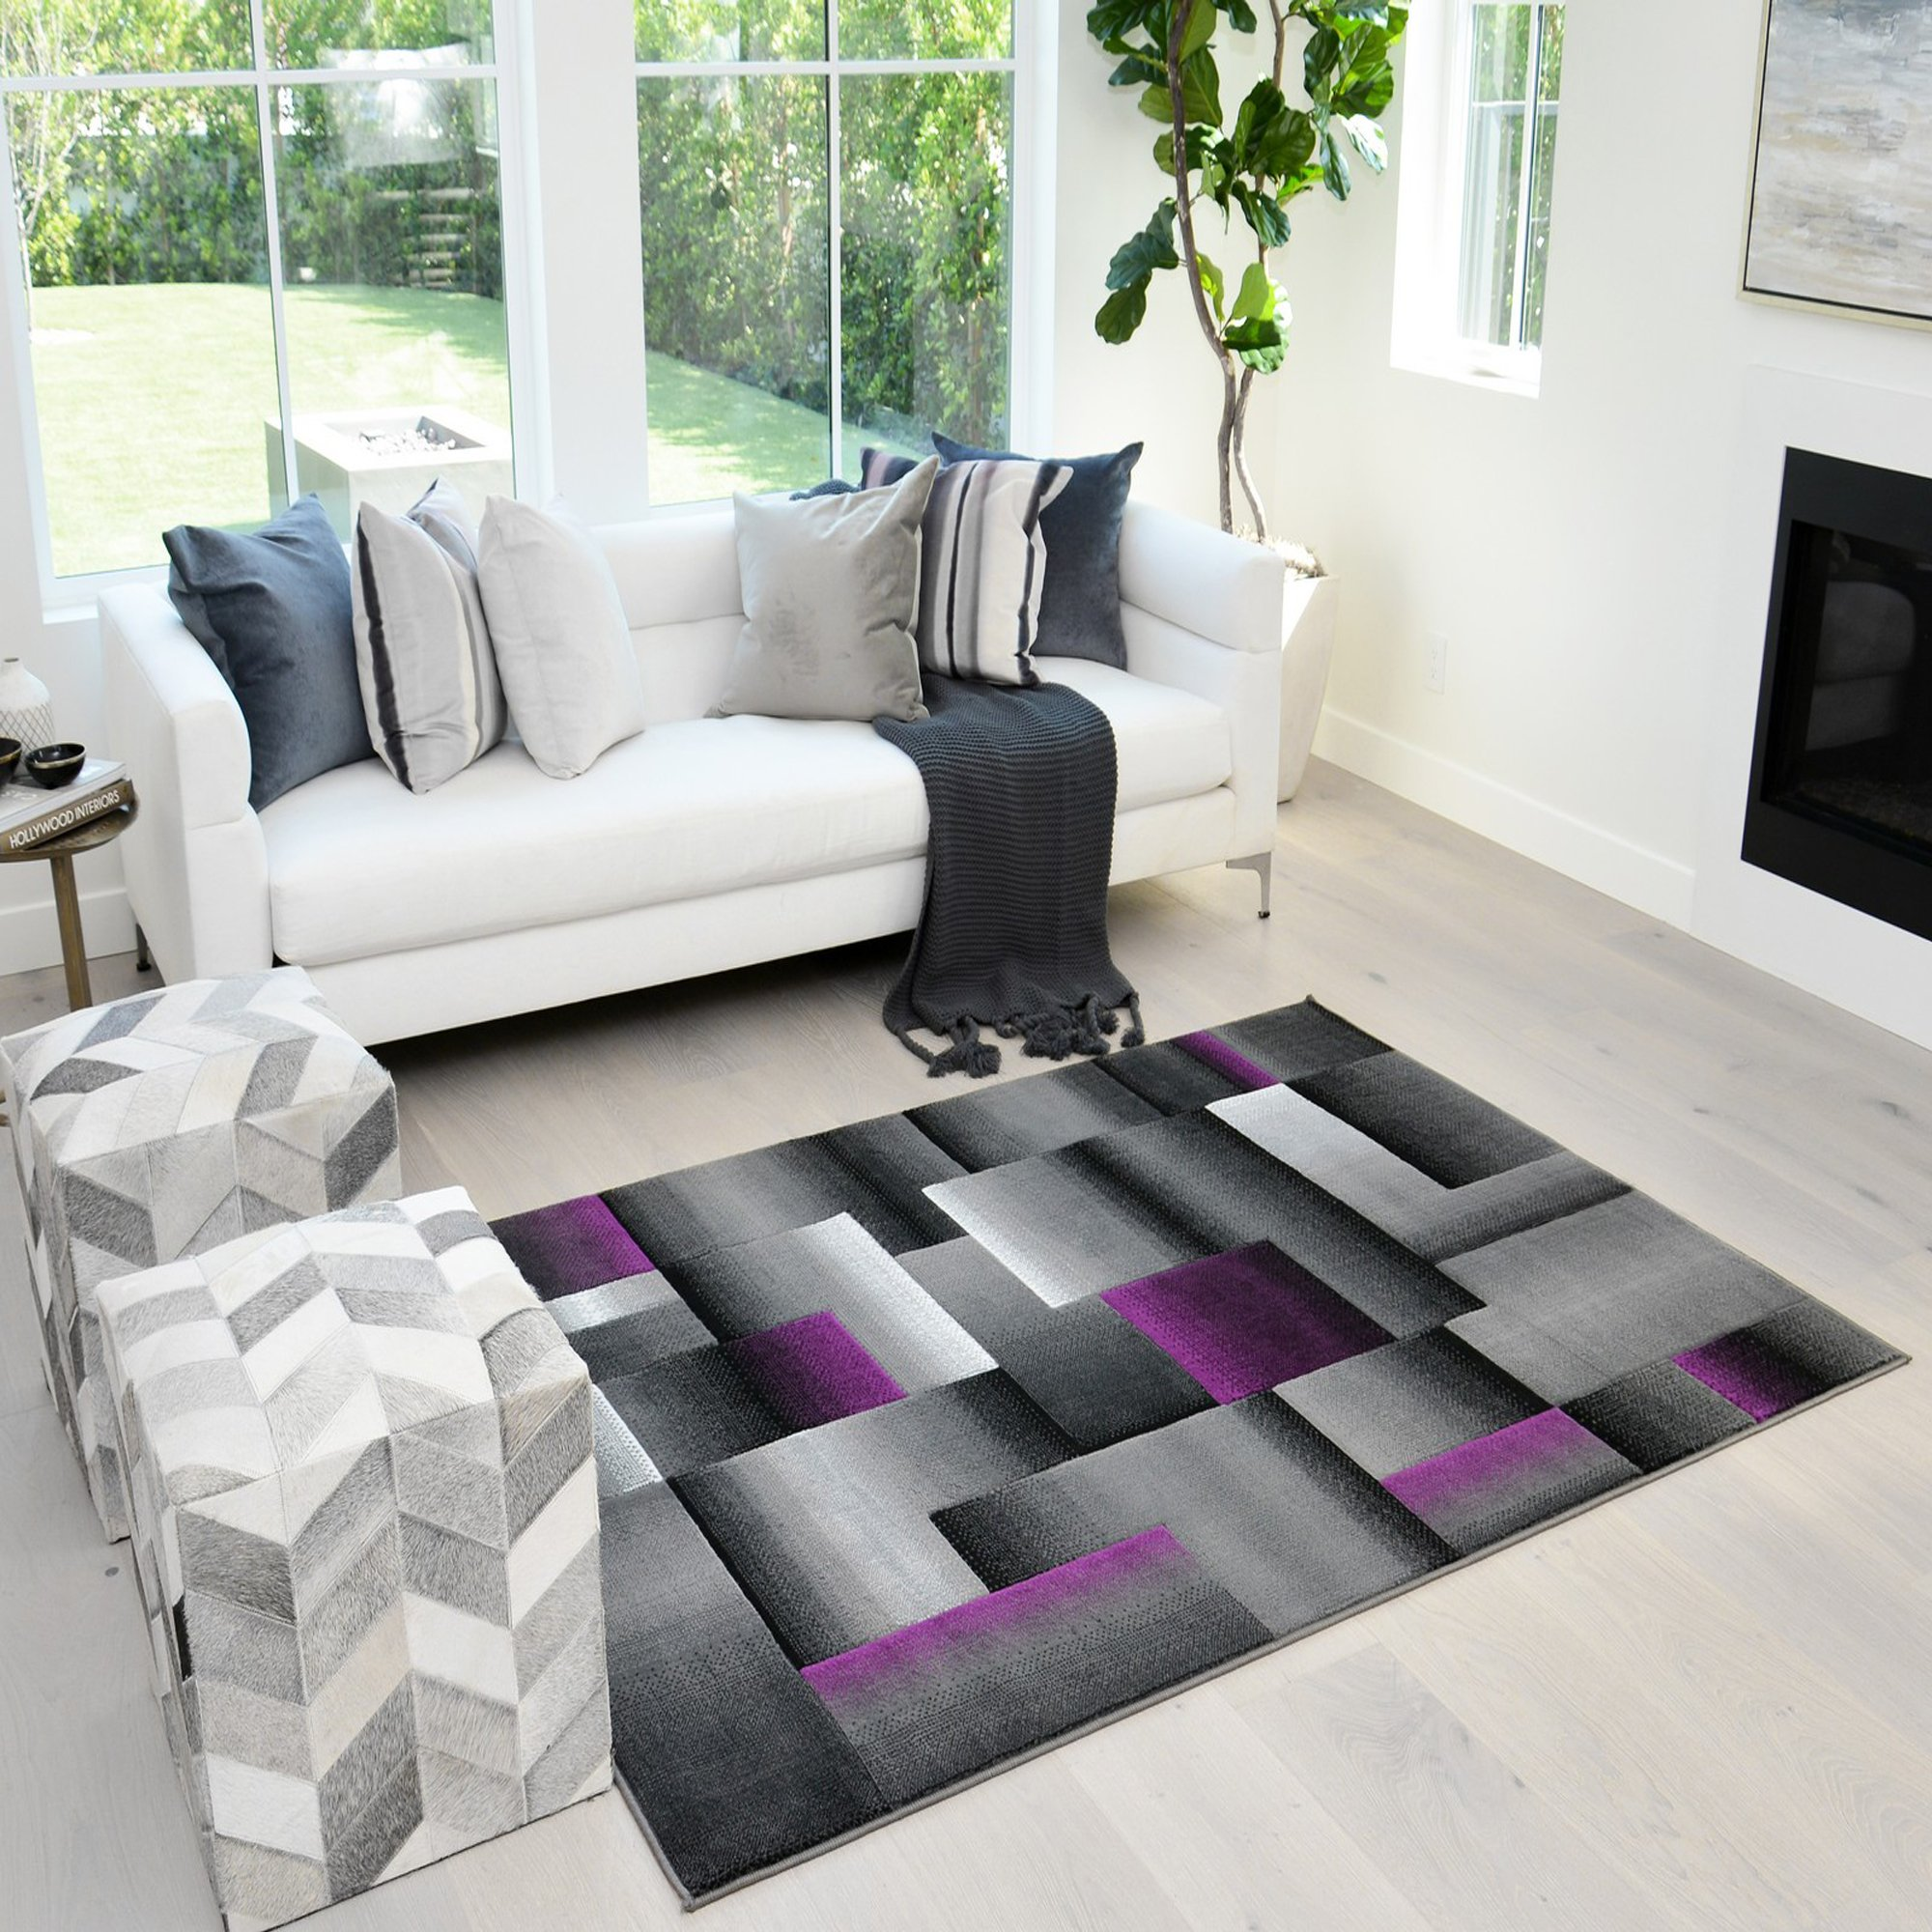 Picture of: Handcraft Rugs Purple And Gray Abstract Geometric Modern Squares Pattern Area Rug 5 Ft By 7 Ft Walmart Com Walmart Com